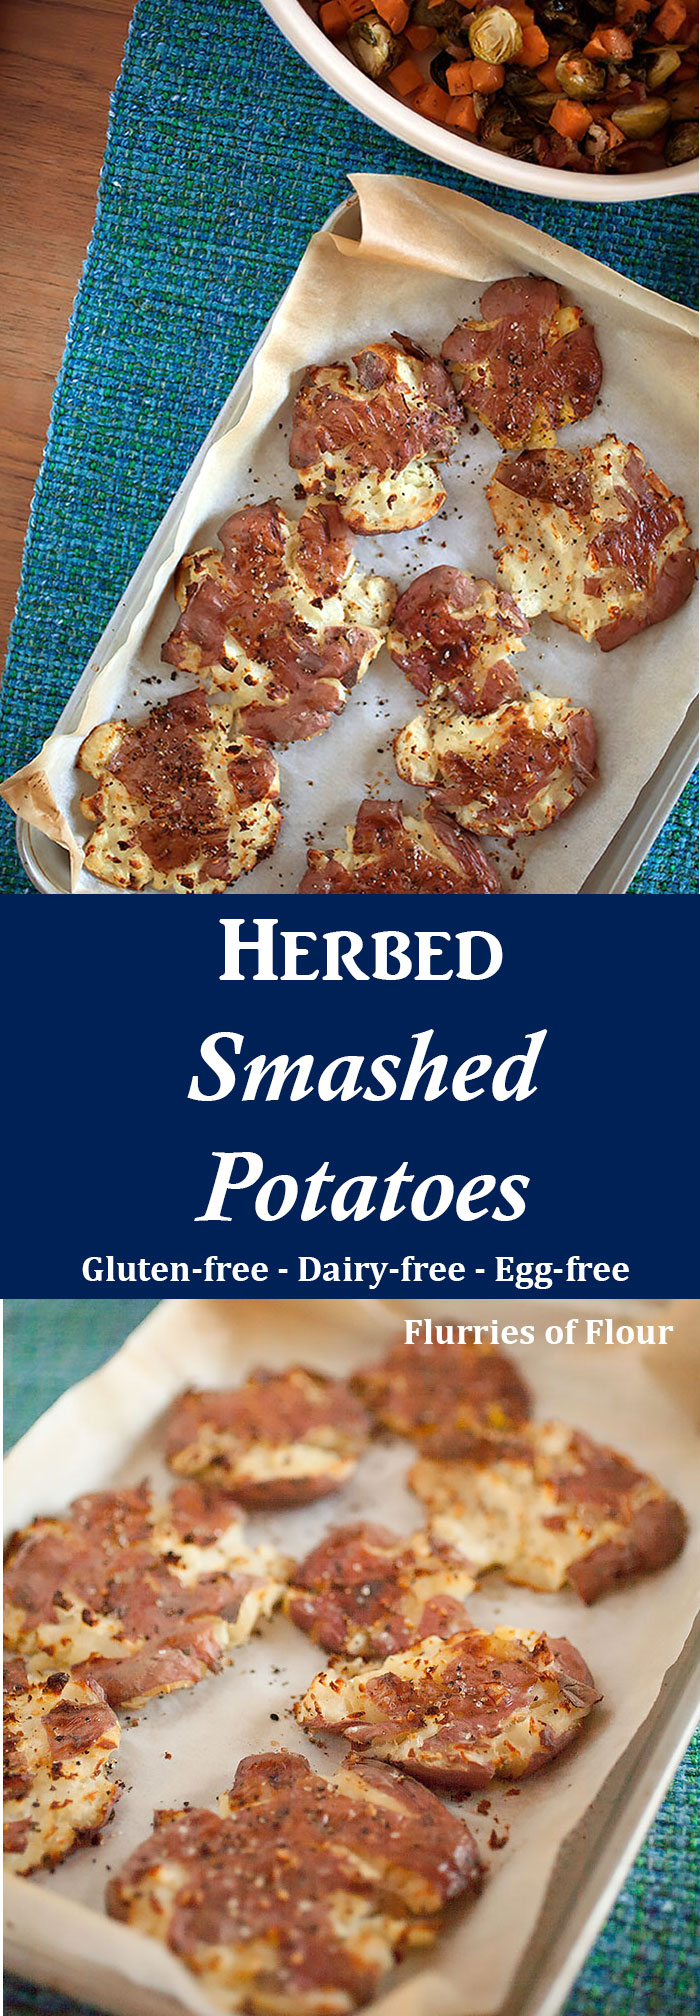 You can't go wrong with these easy-to-make Thanksgiving herbed smashed potatoes—creamy on the inside, crispy on the outside, and a salty-herby-buttery flavor!